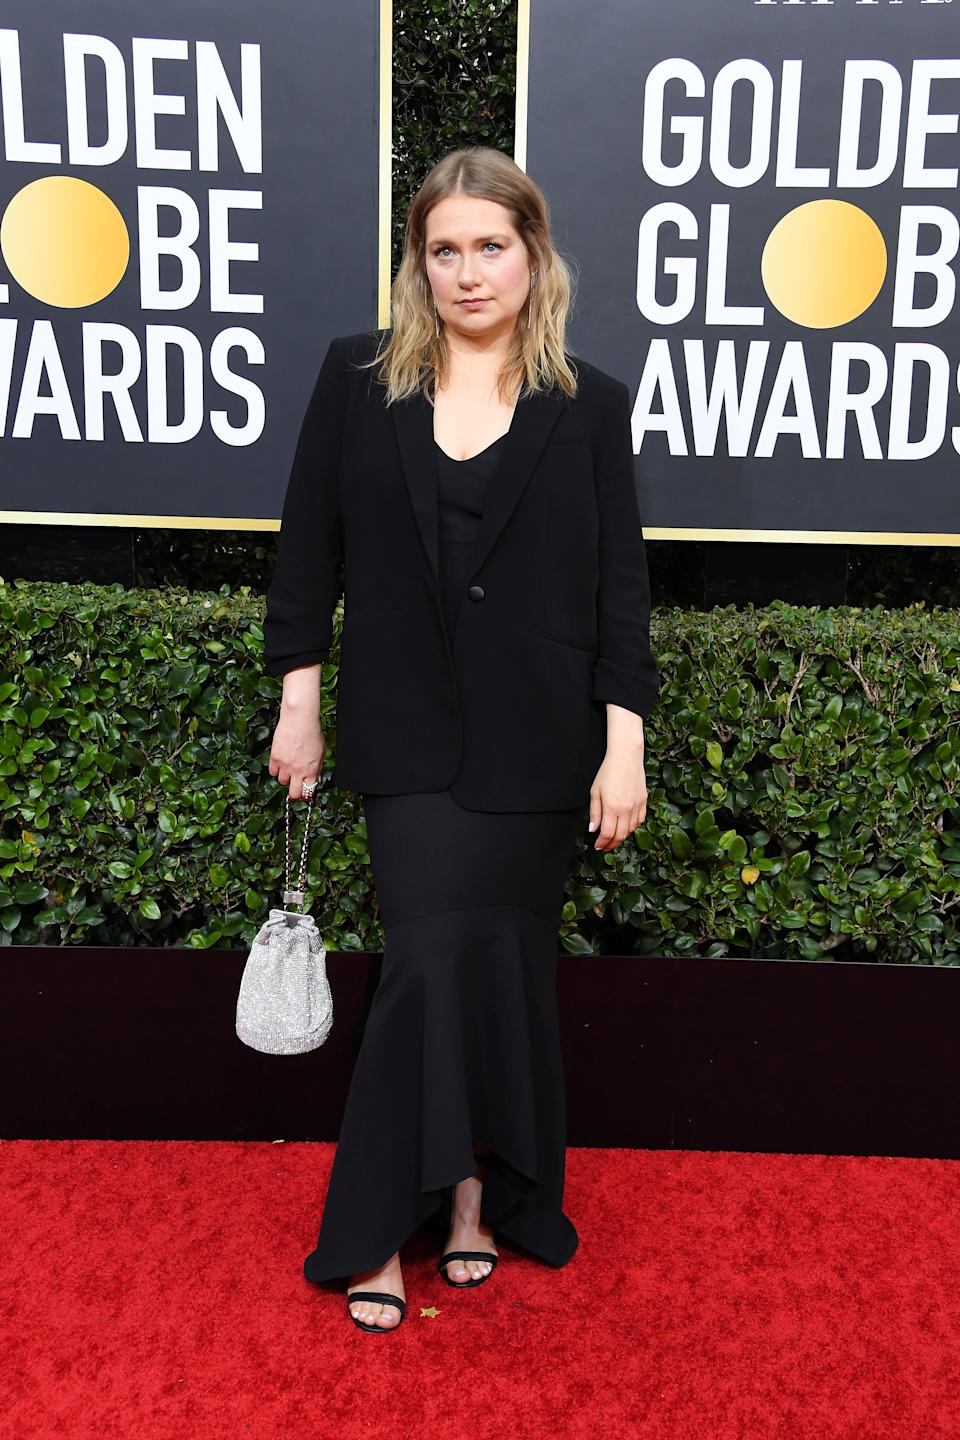 "<h1 class=""title"">Merritt Wever in Cinq à Sept and Chloe Gosselin shoes</h1><cite class=""credit"">Photo: Getty Images</cite>"